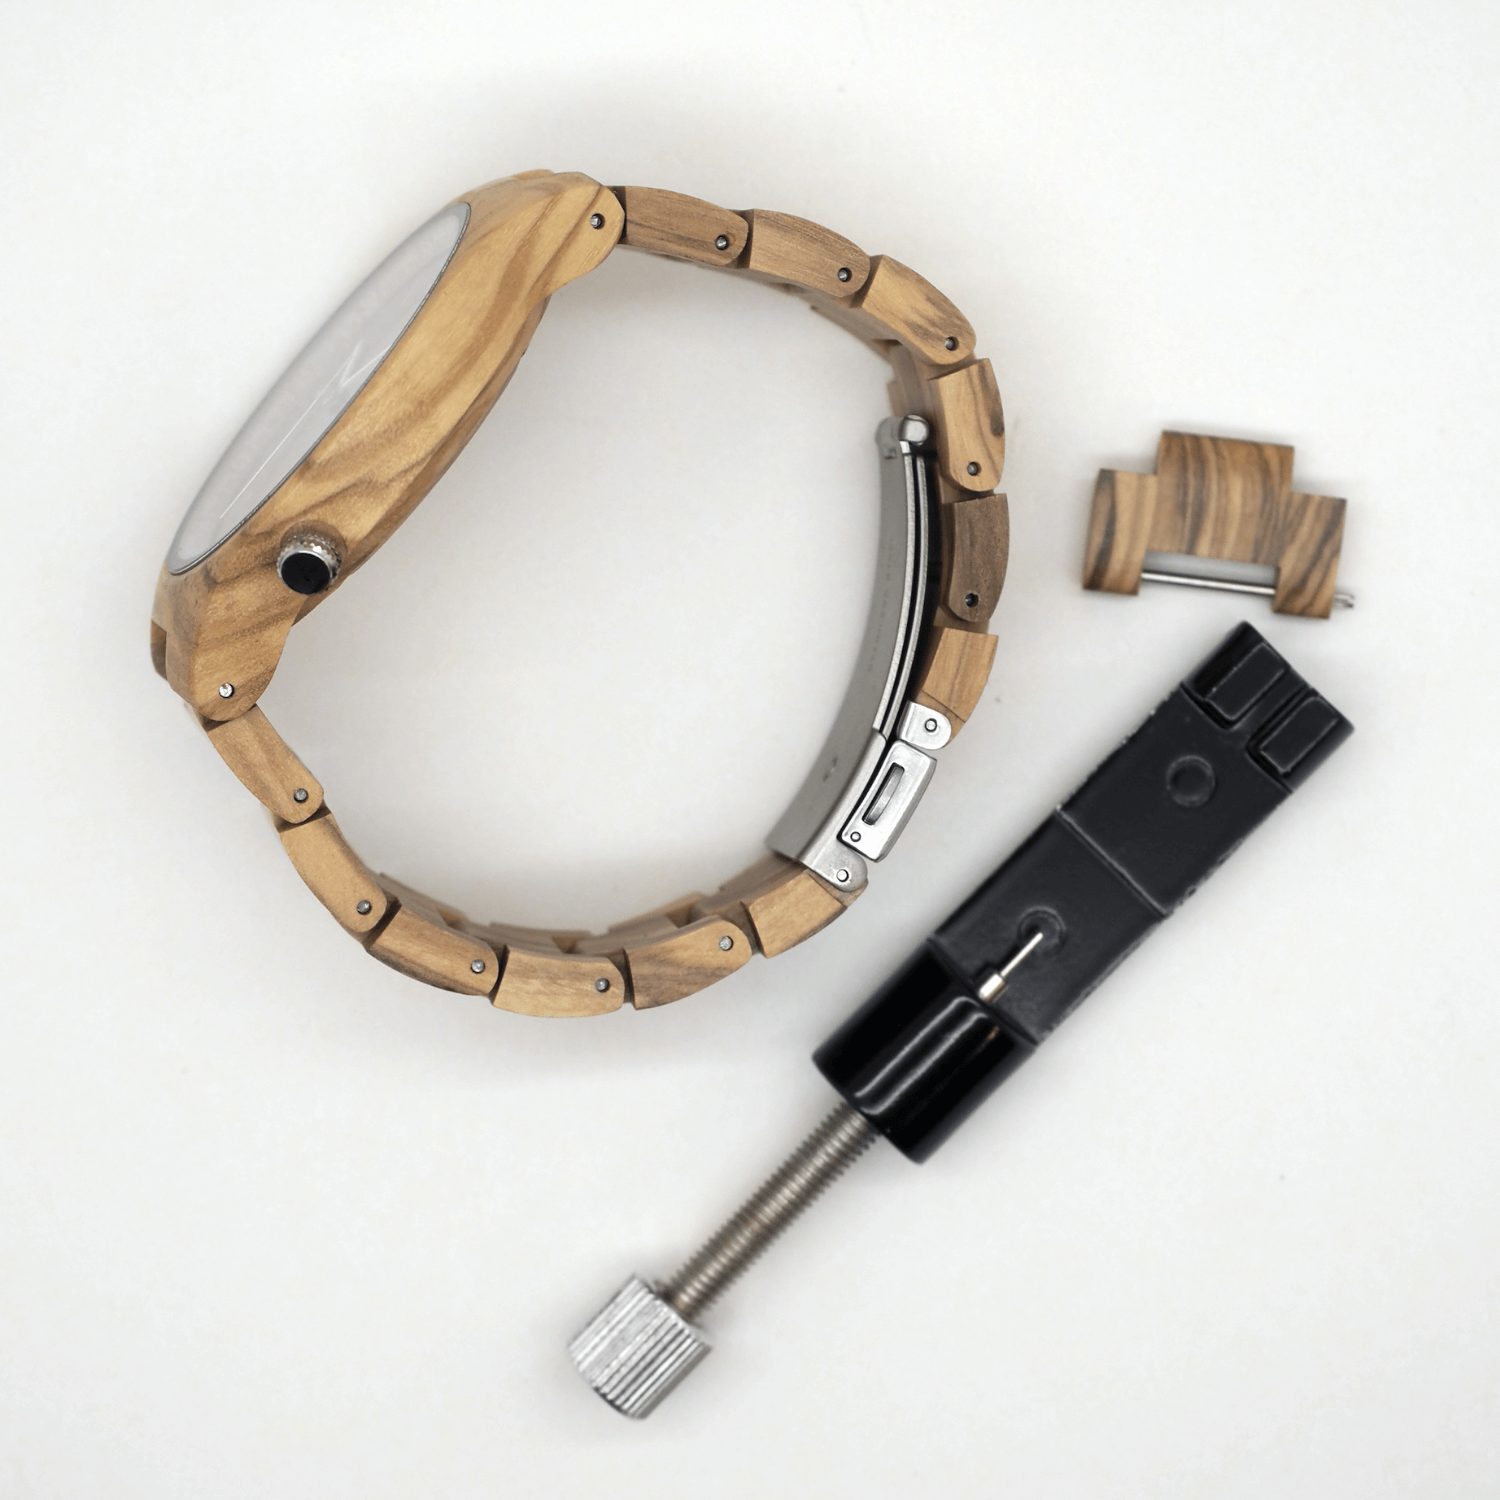 Reassembled Wooden Watch link adjustment tool and spare link